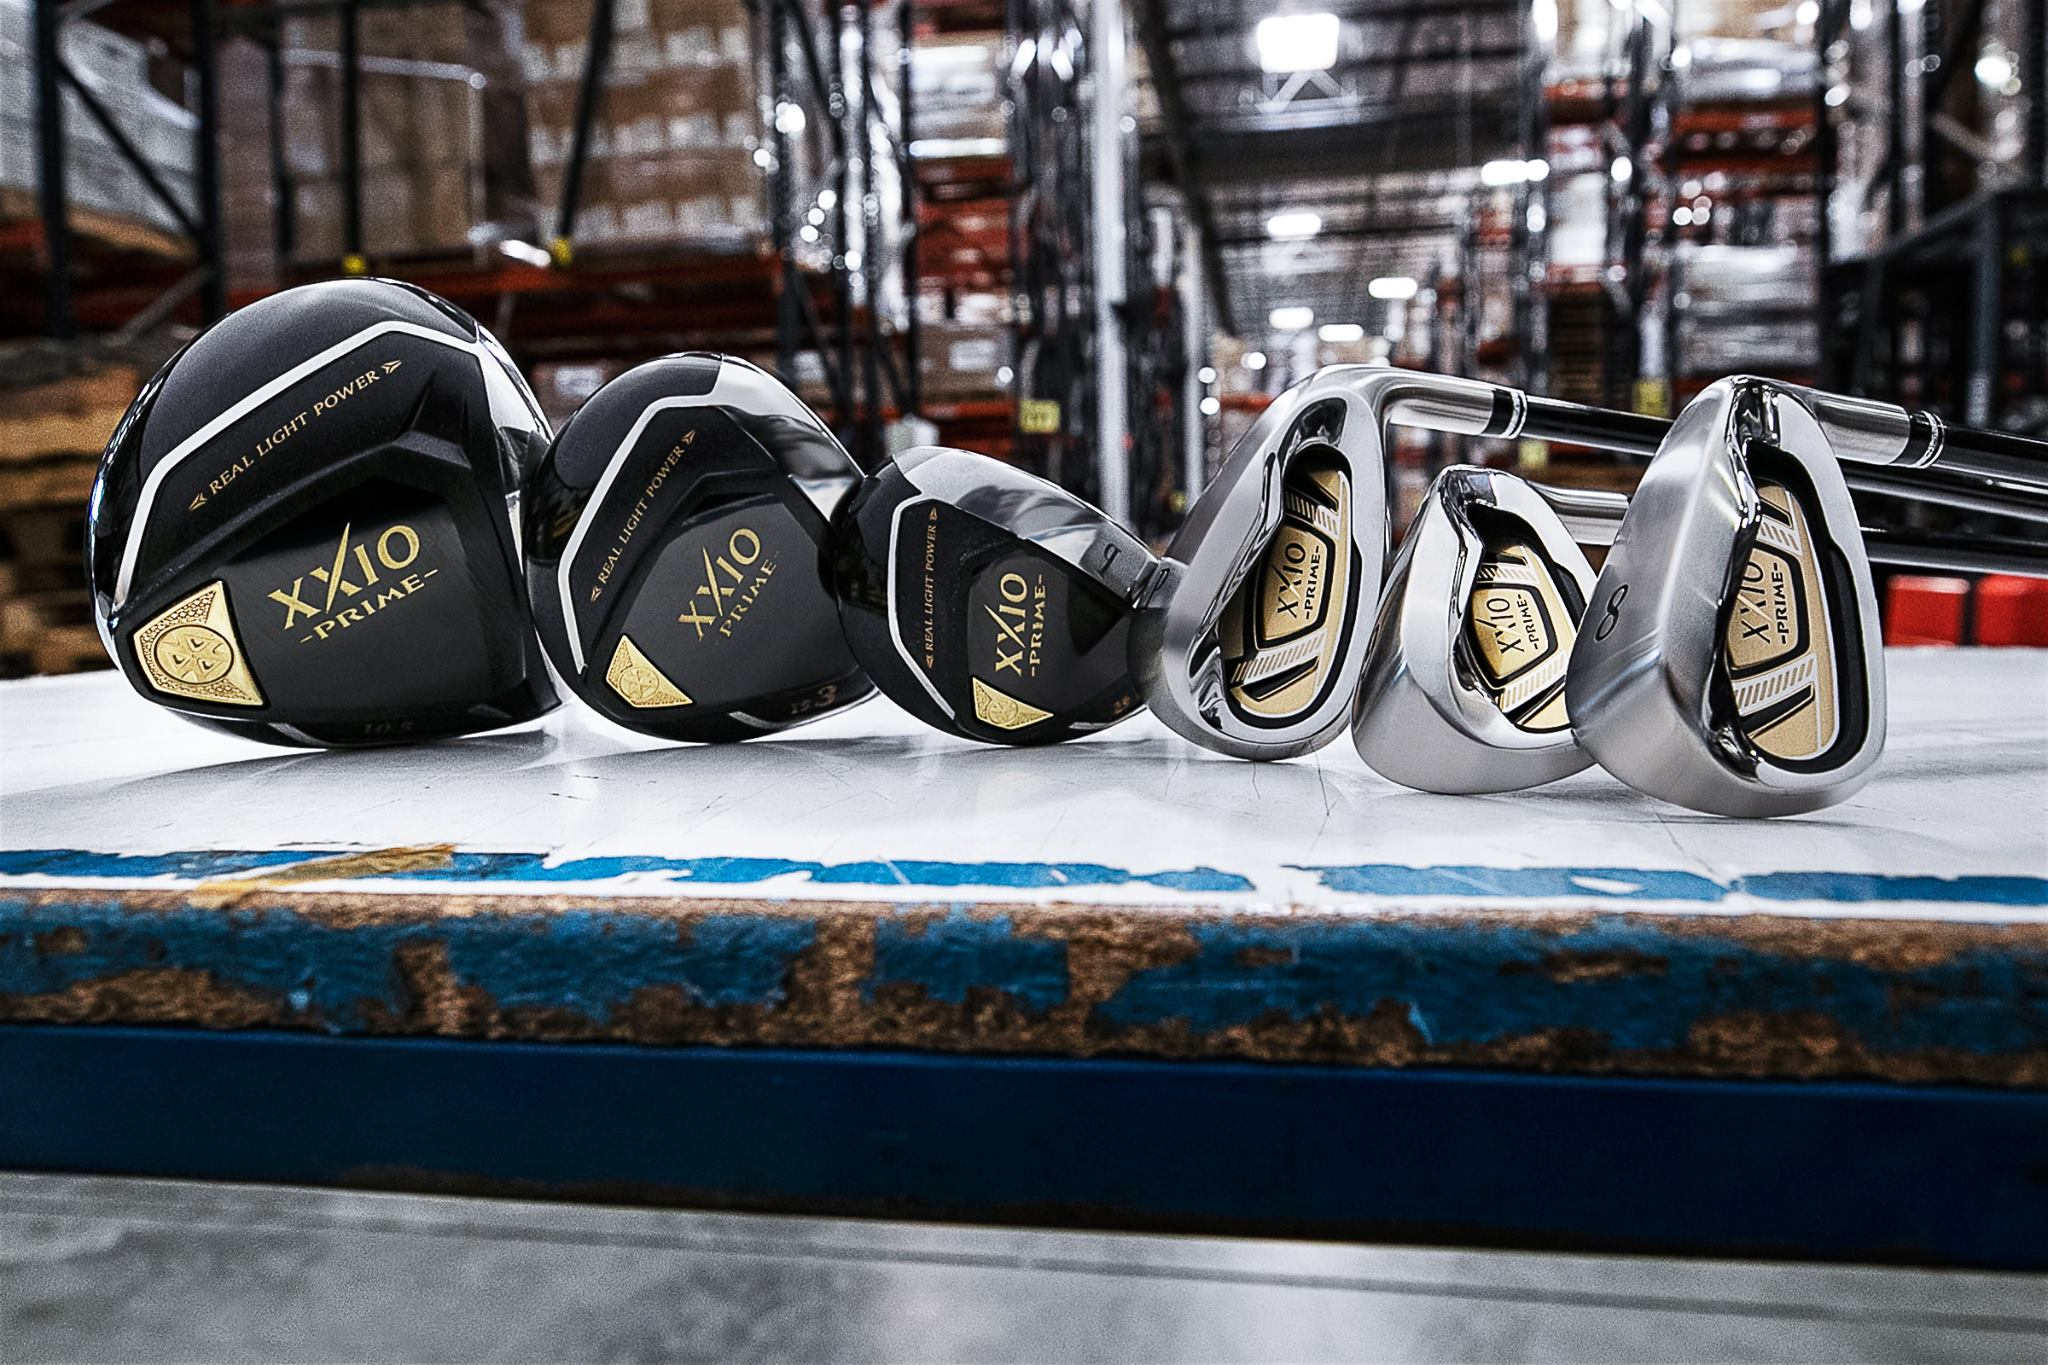 XXIO Golf Demo Day at  Pro Golf Discount Southcenter